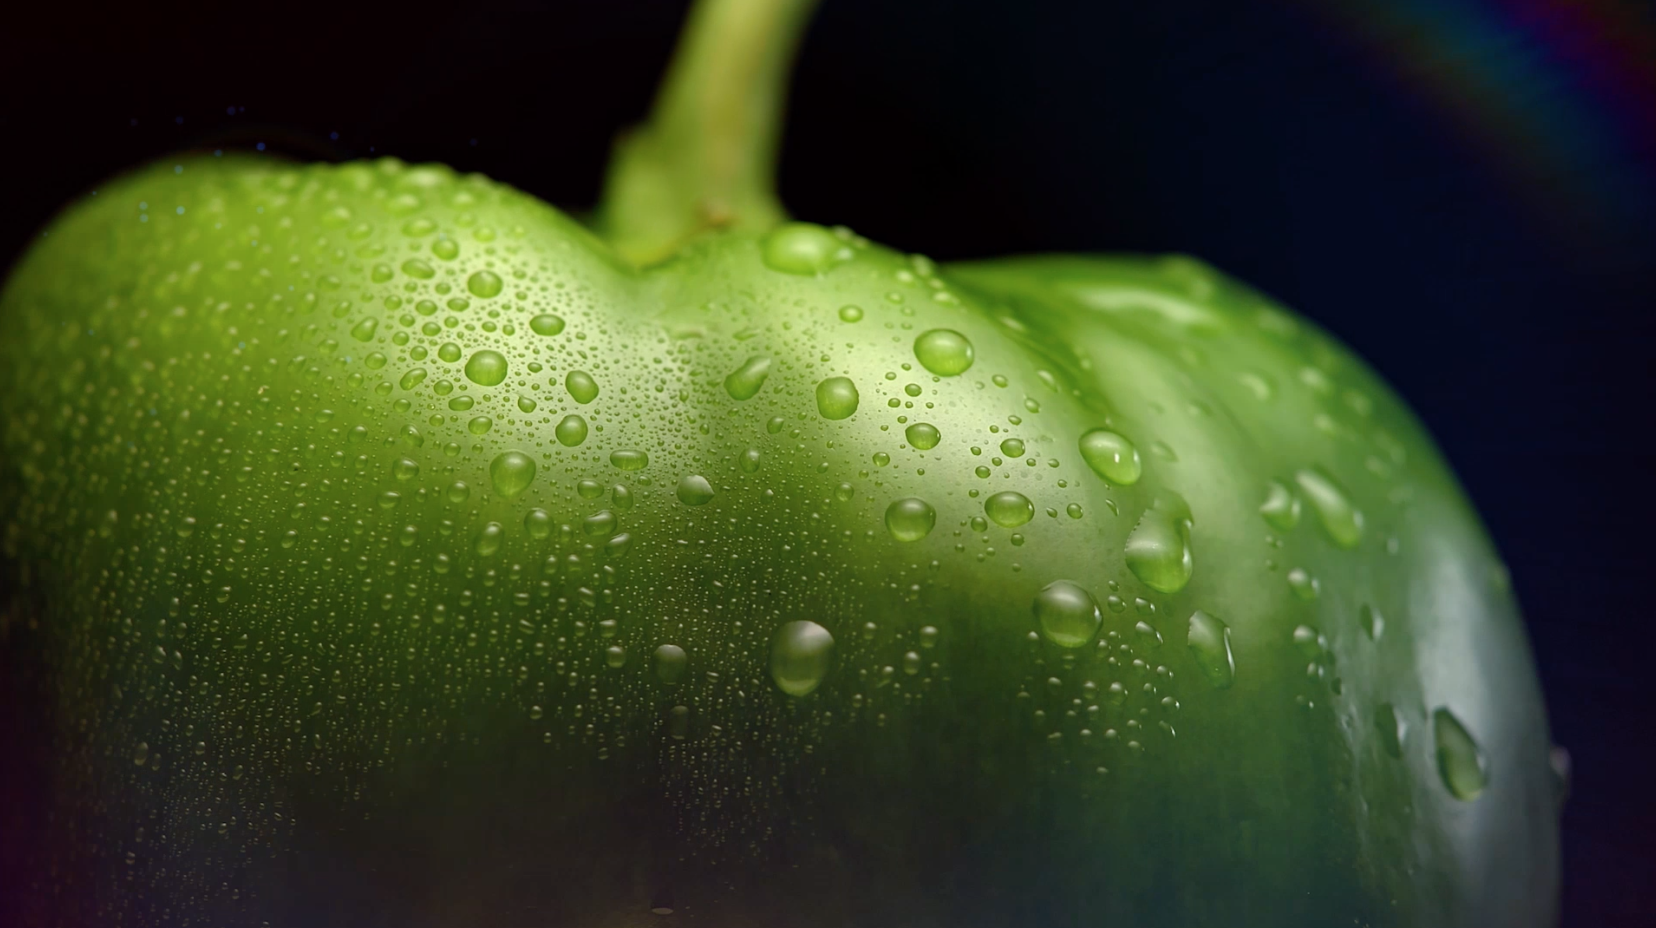 Taylor Vieger Macro Food Photography 2019 Peppers.png